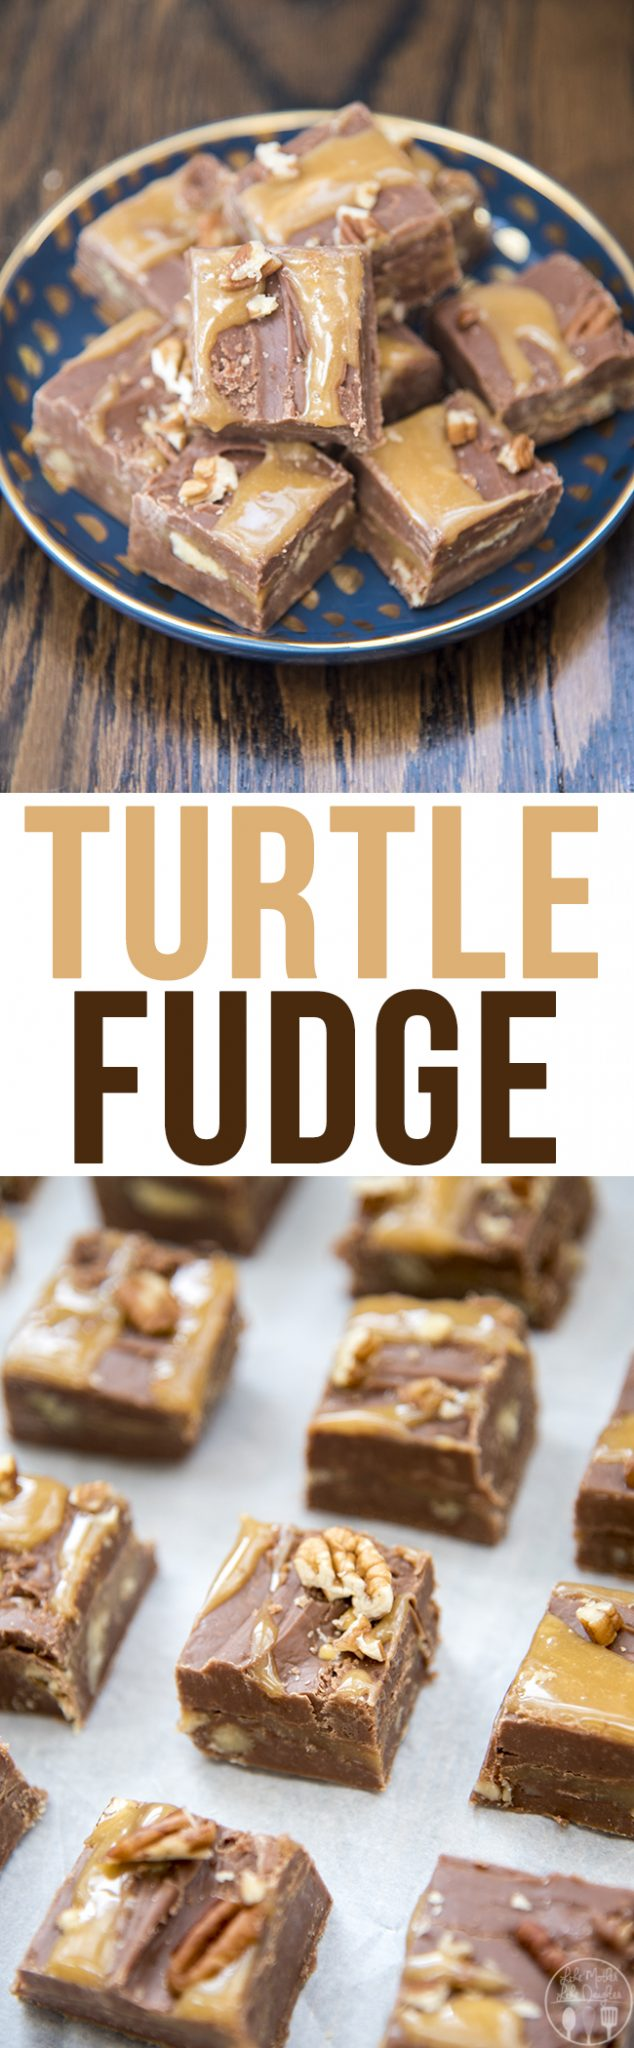 Turtle fudge is a creamy chocolate fudge with a caramel and pecan center! Its a delicious treatthat everyone will love!